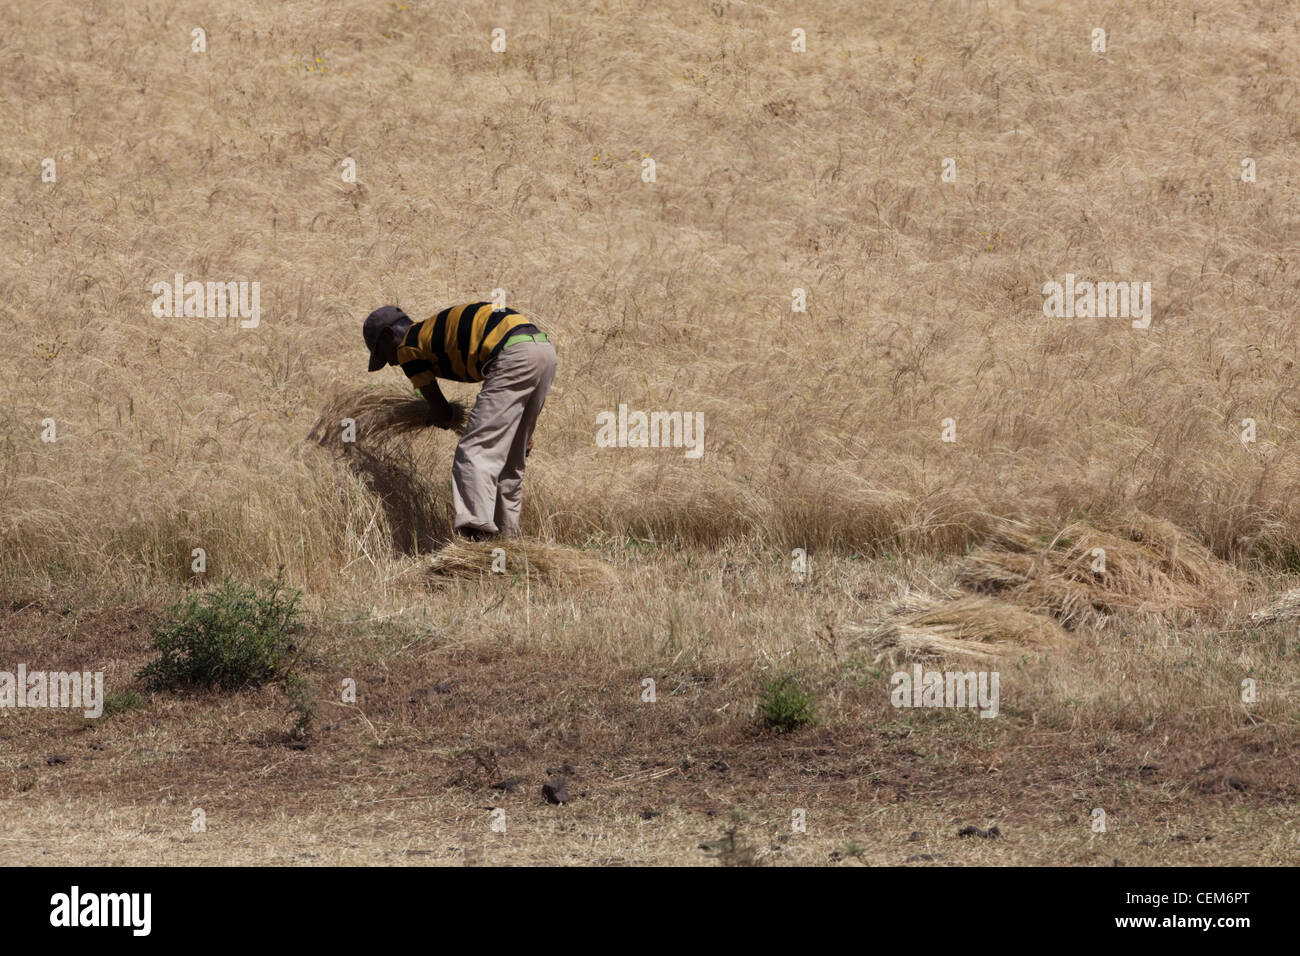 Farmer harvesting a Millet (Panicum sp. ) cereal crop by hand using a sickle. November. Highlands. Ethiopia. - Stock Image